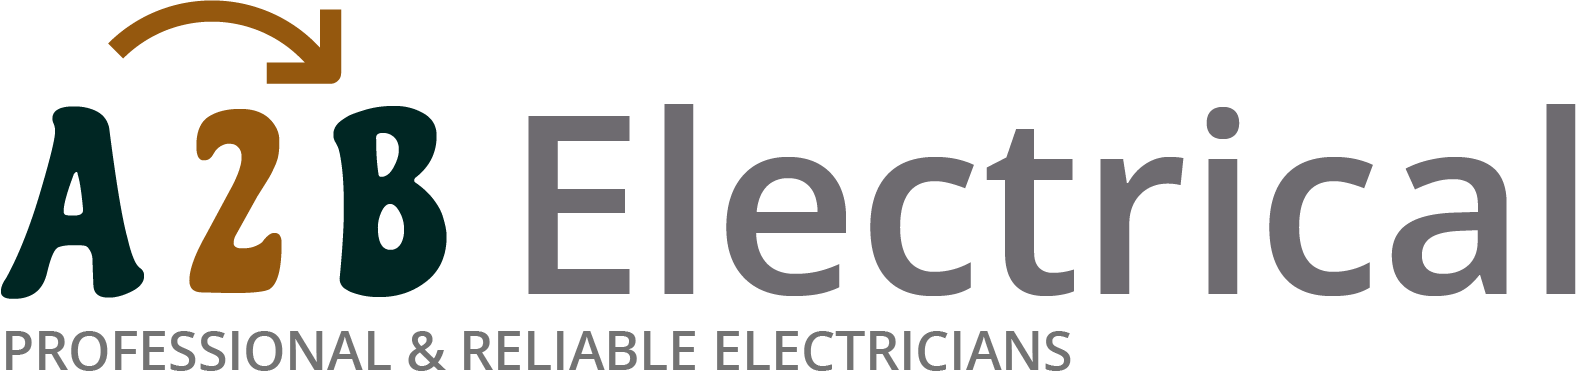 If you have electrical wiring problems in Tilbury, we can provide an electrician to have a look for you.